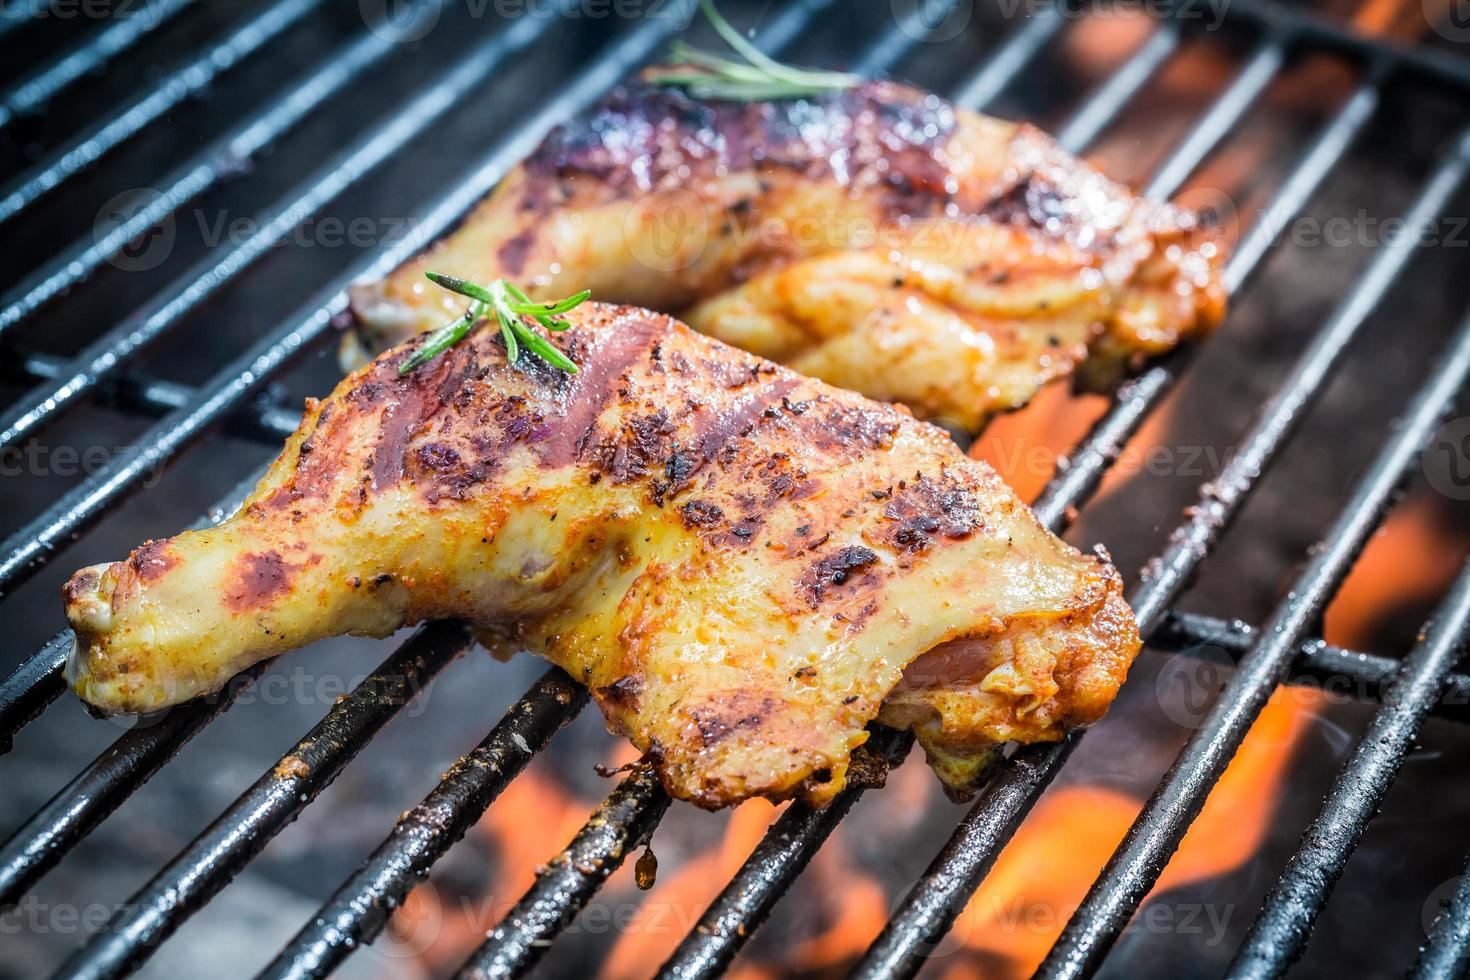 Roasted chicken legs on the grill with fire photo